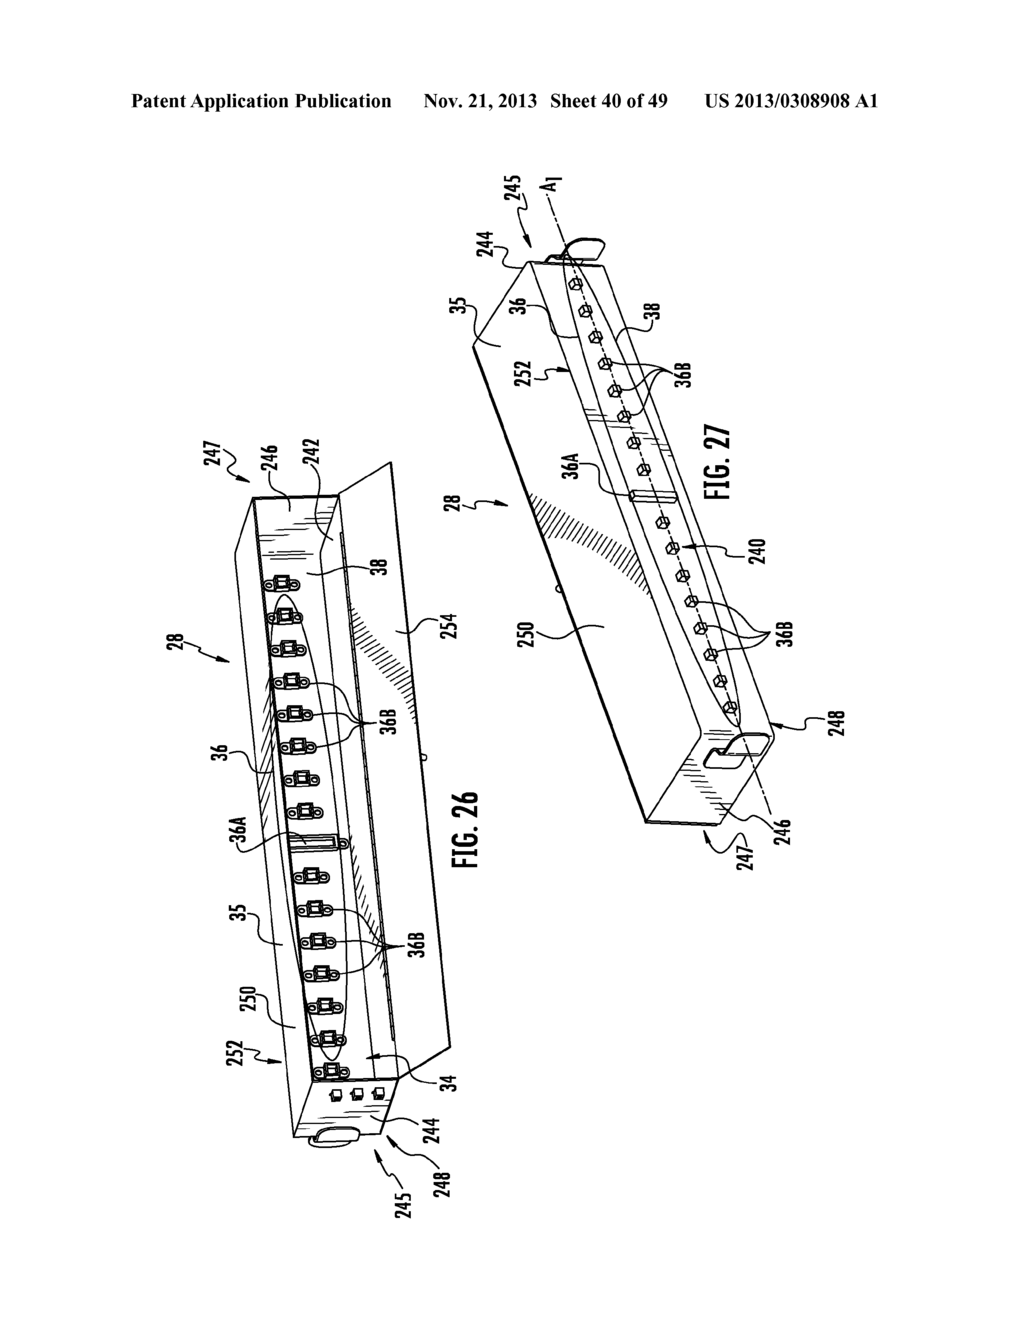 hight resolution of  related connectors and cables suitable for establishing optical connections for optical backplanes in equipment racks diagram schematic and image 41